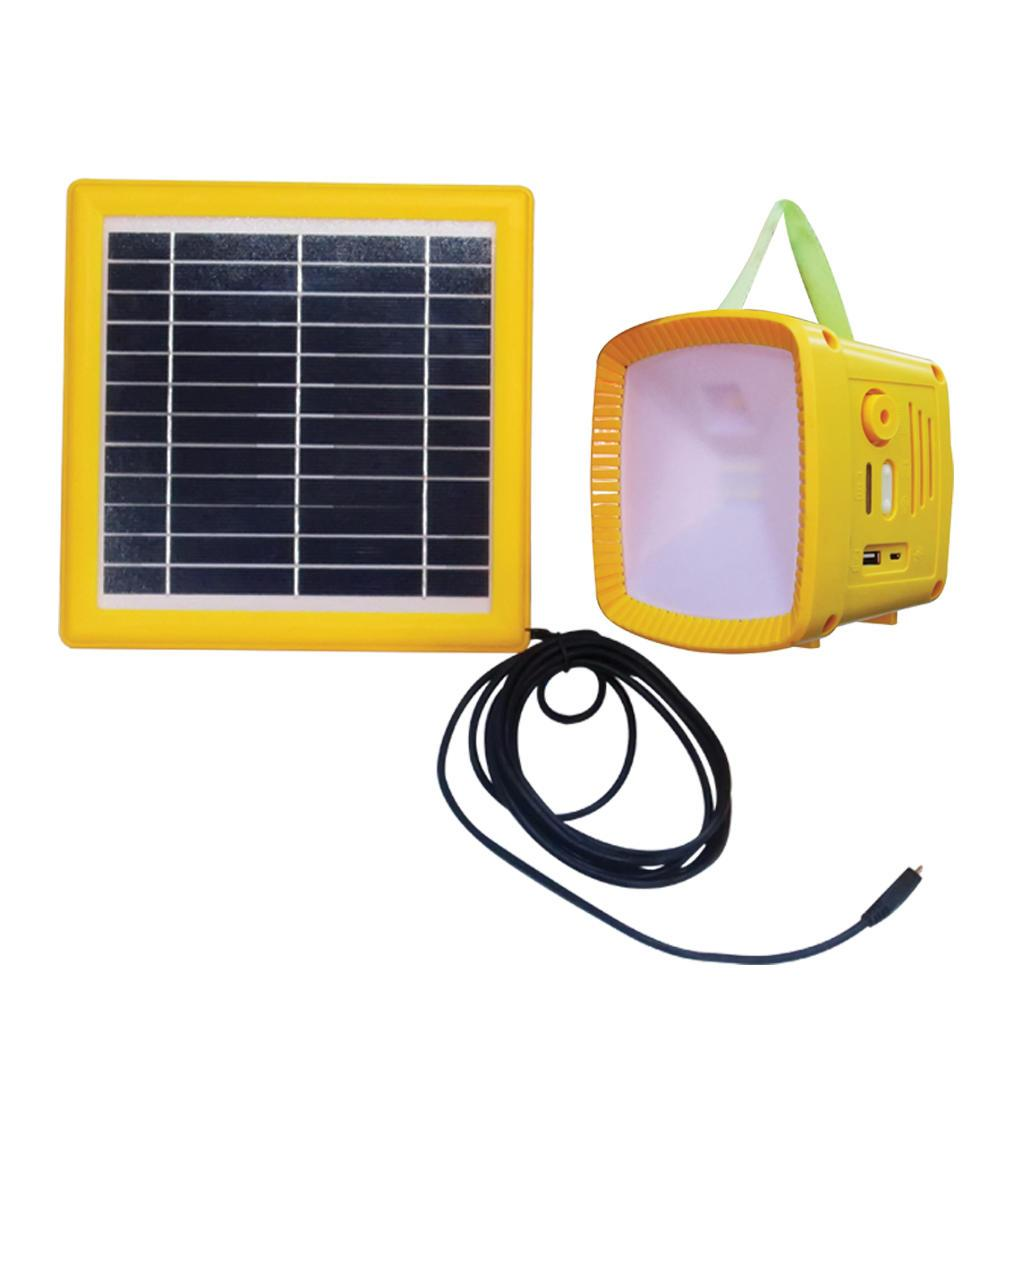 Nibban SLR-001 Solar Lighting